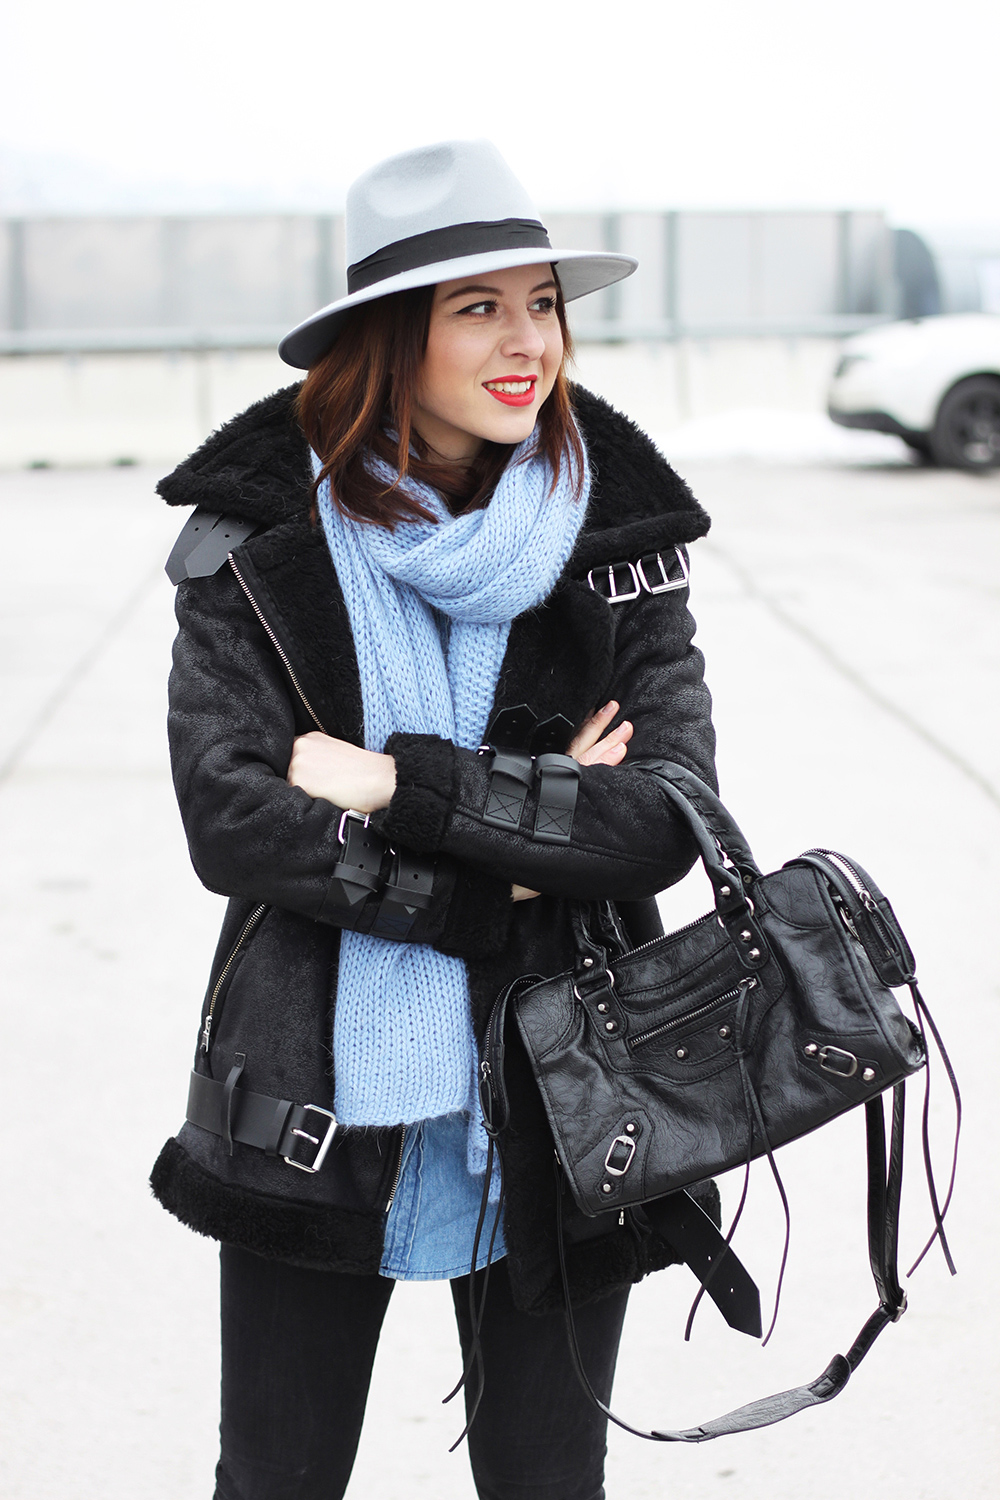 who is mocca, fashionblog, tirol, blogger, mode, pimkie, weisse sneaker, balenciaga lookalike tasche motorcycle oasap, acne lookalike shearling jacket pepe jeans, hellblauer schal, fedora hut grau, jeanshemd